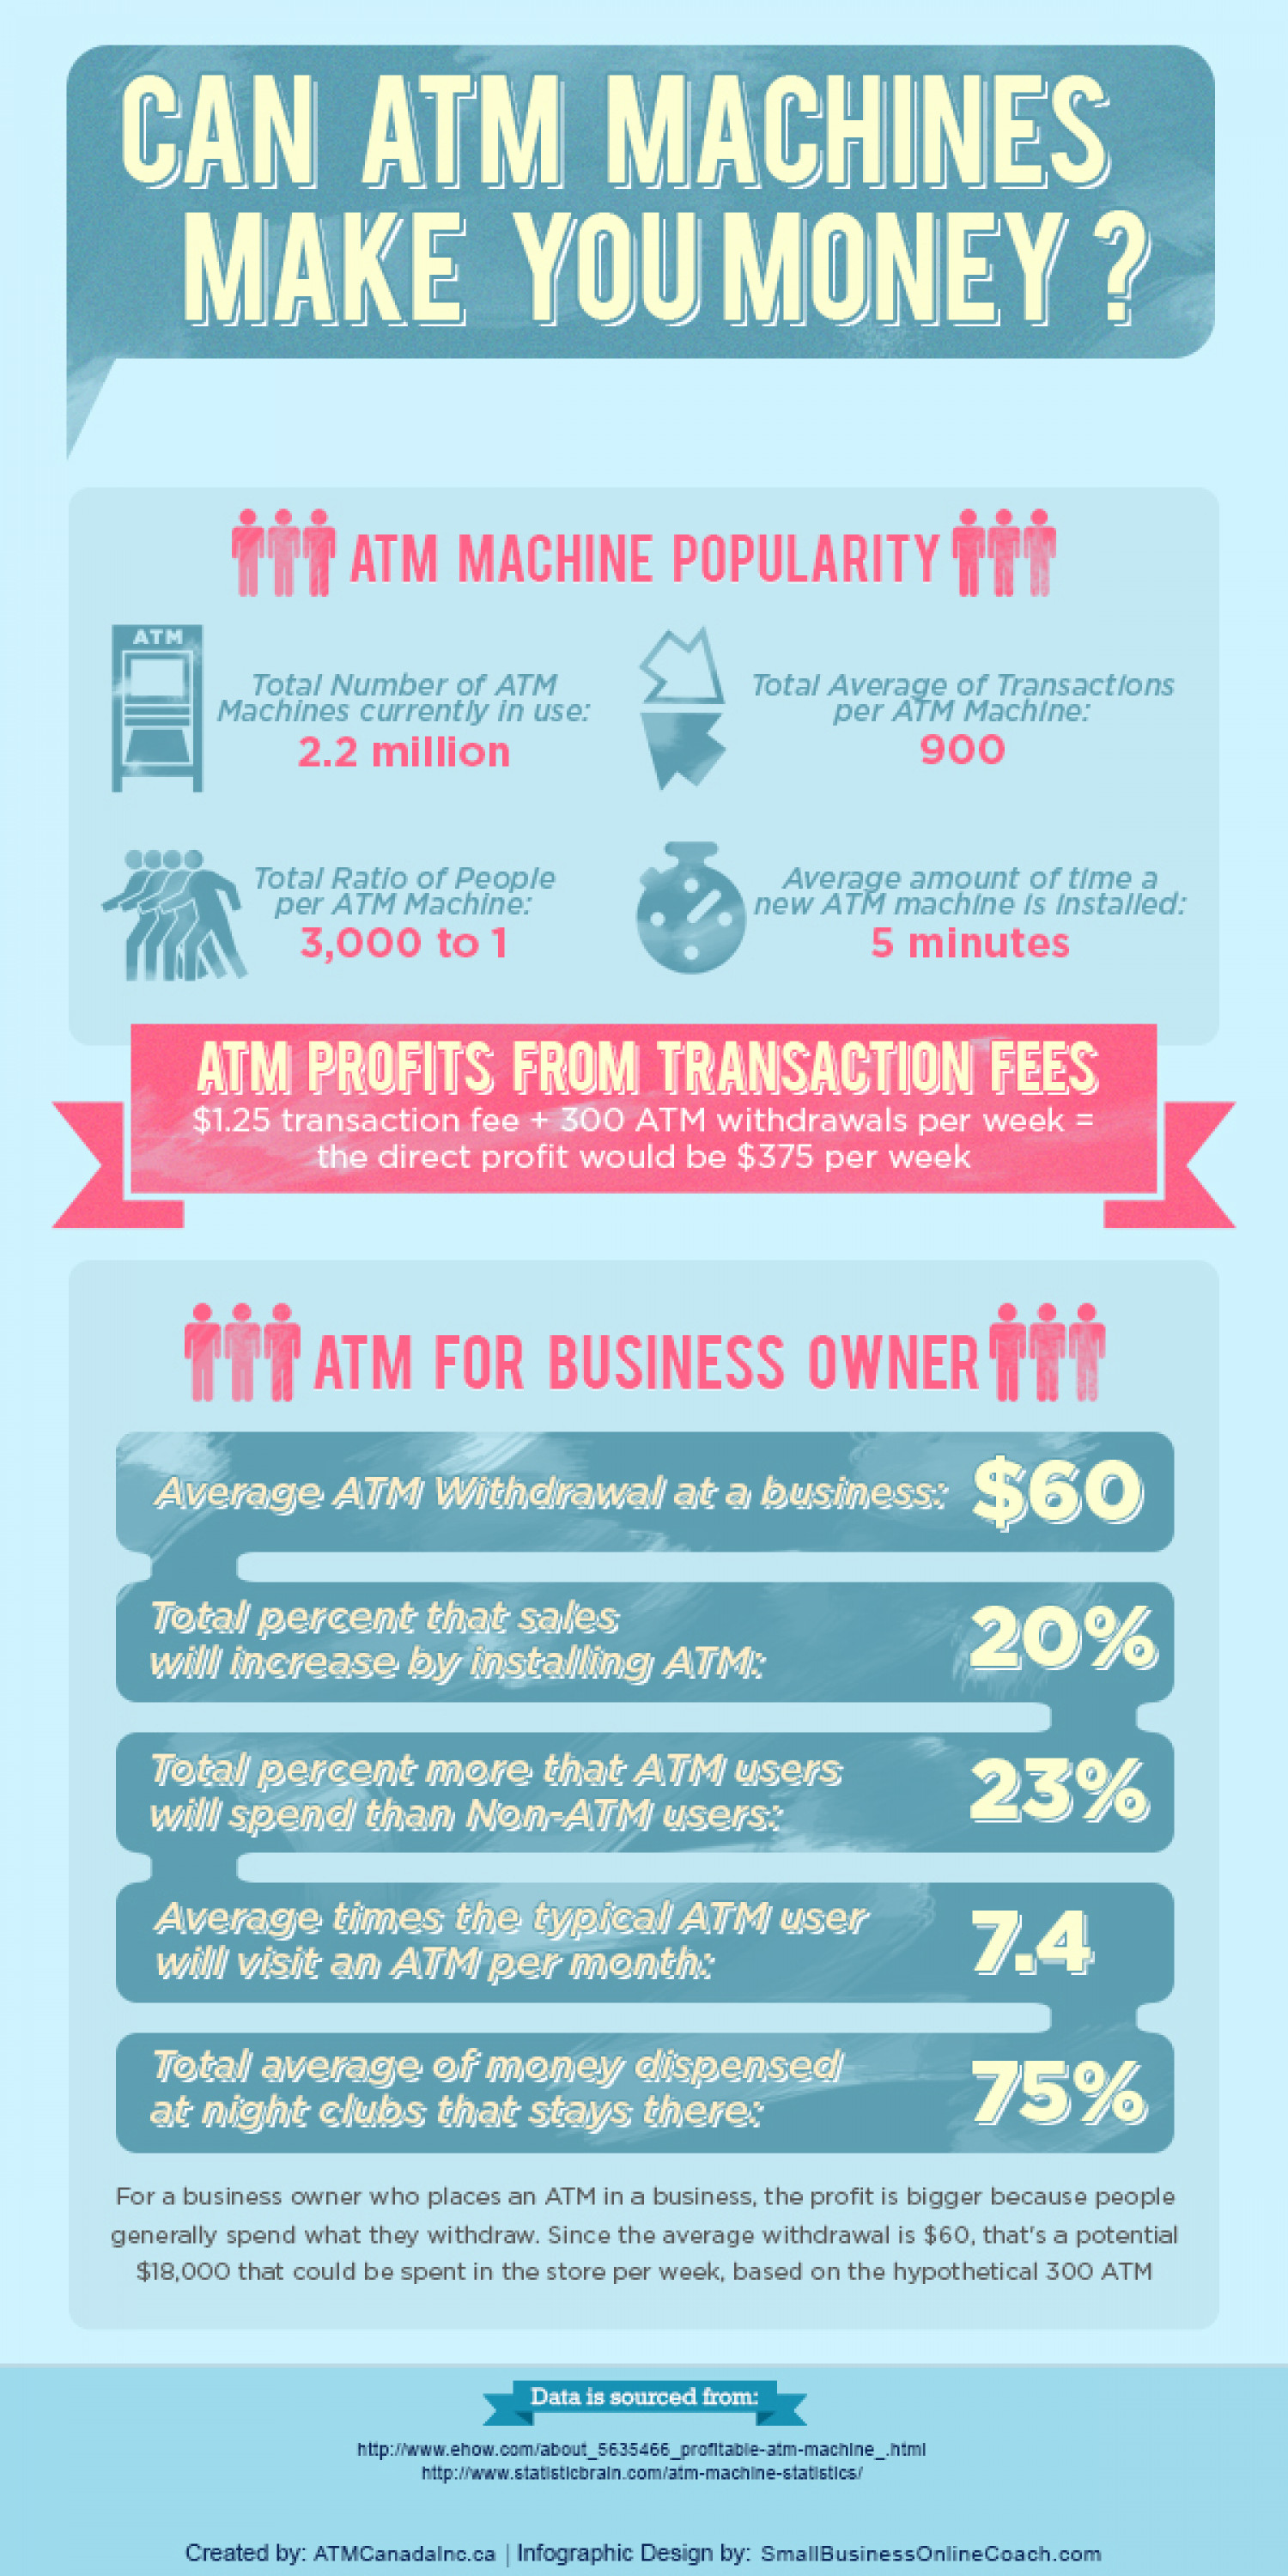 Can ATM Machines Make You Money? Infographic